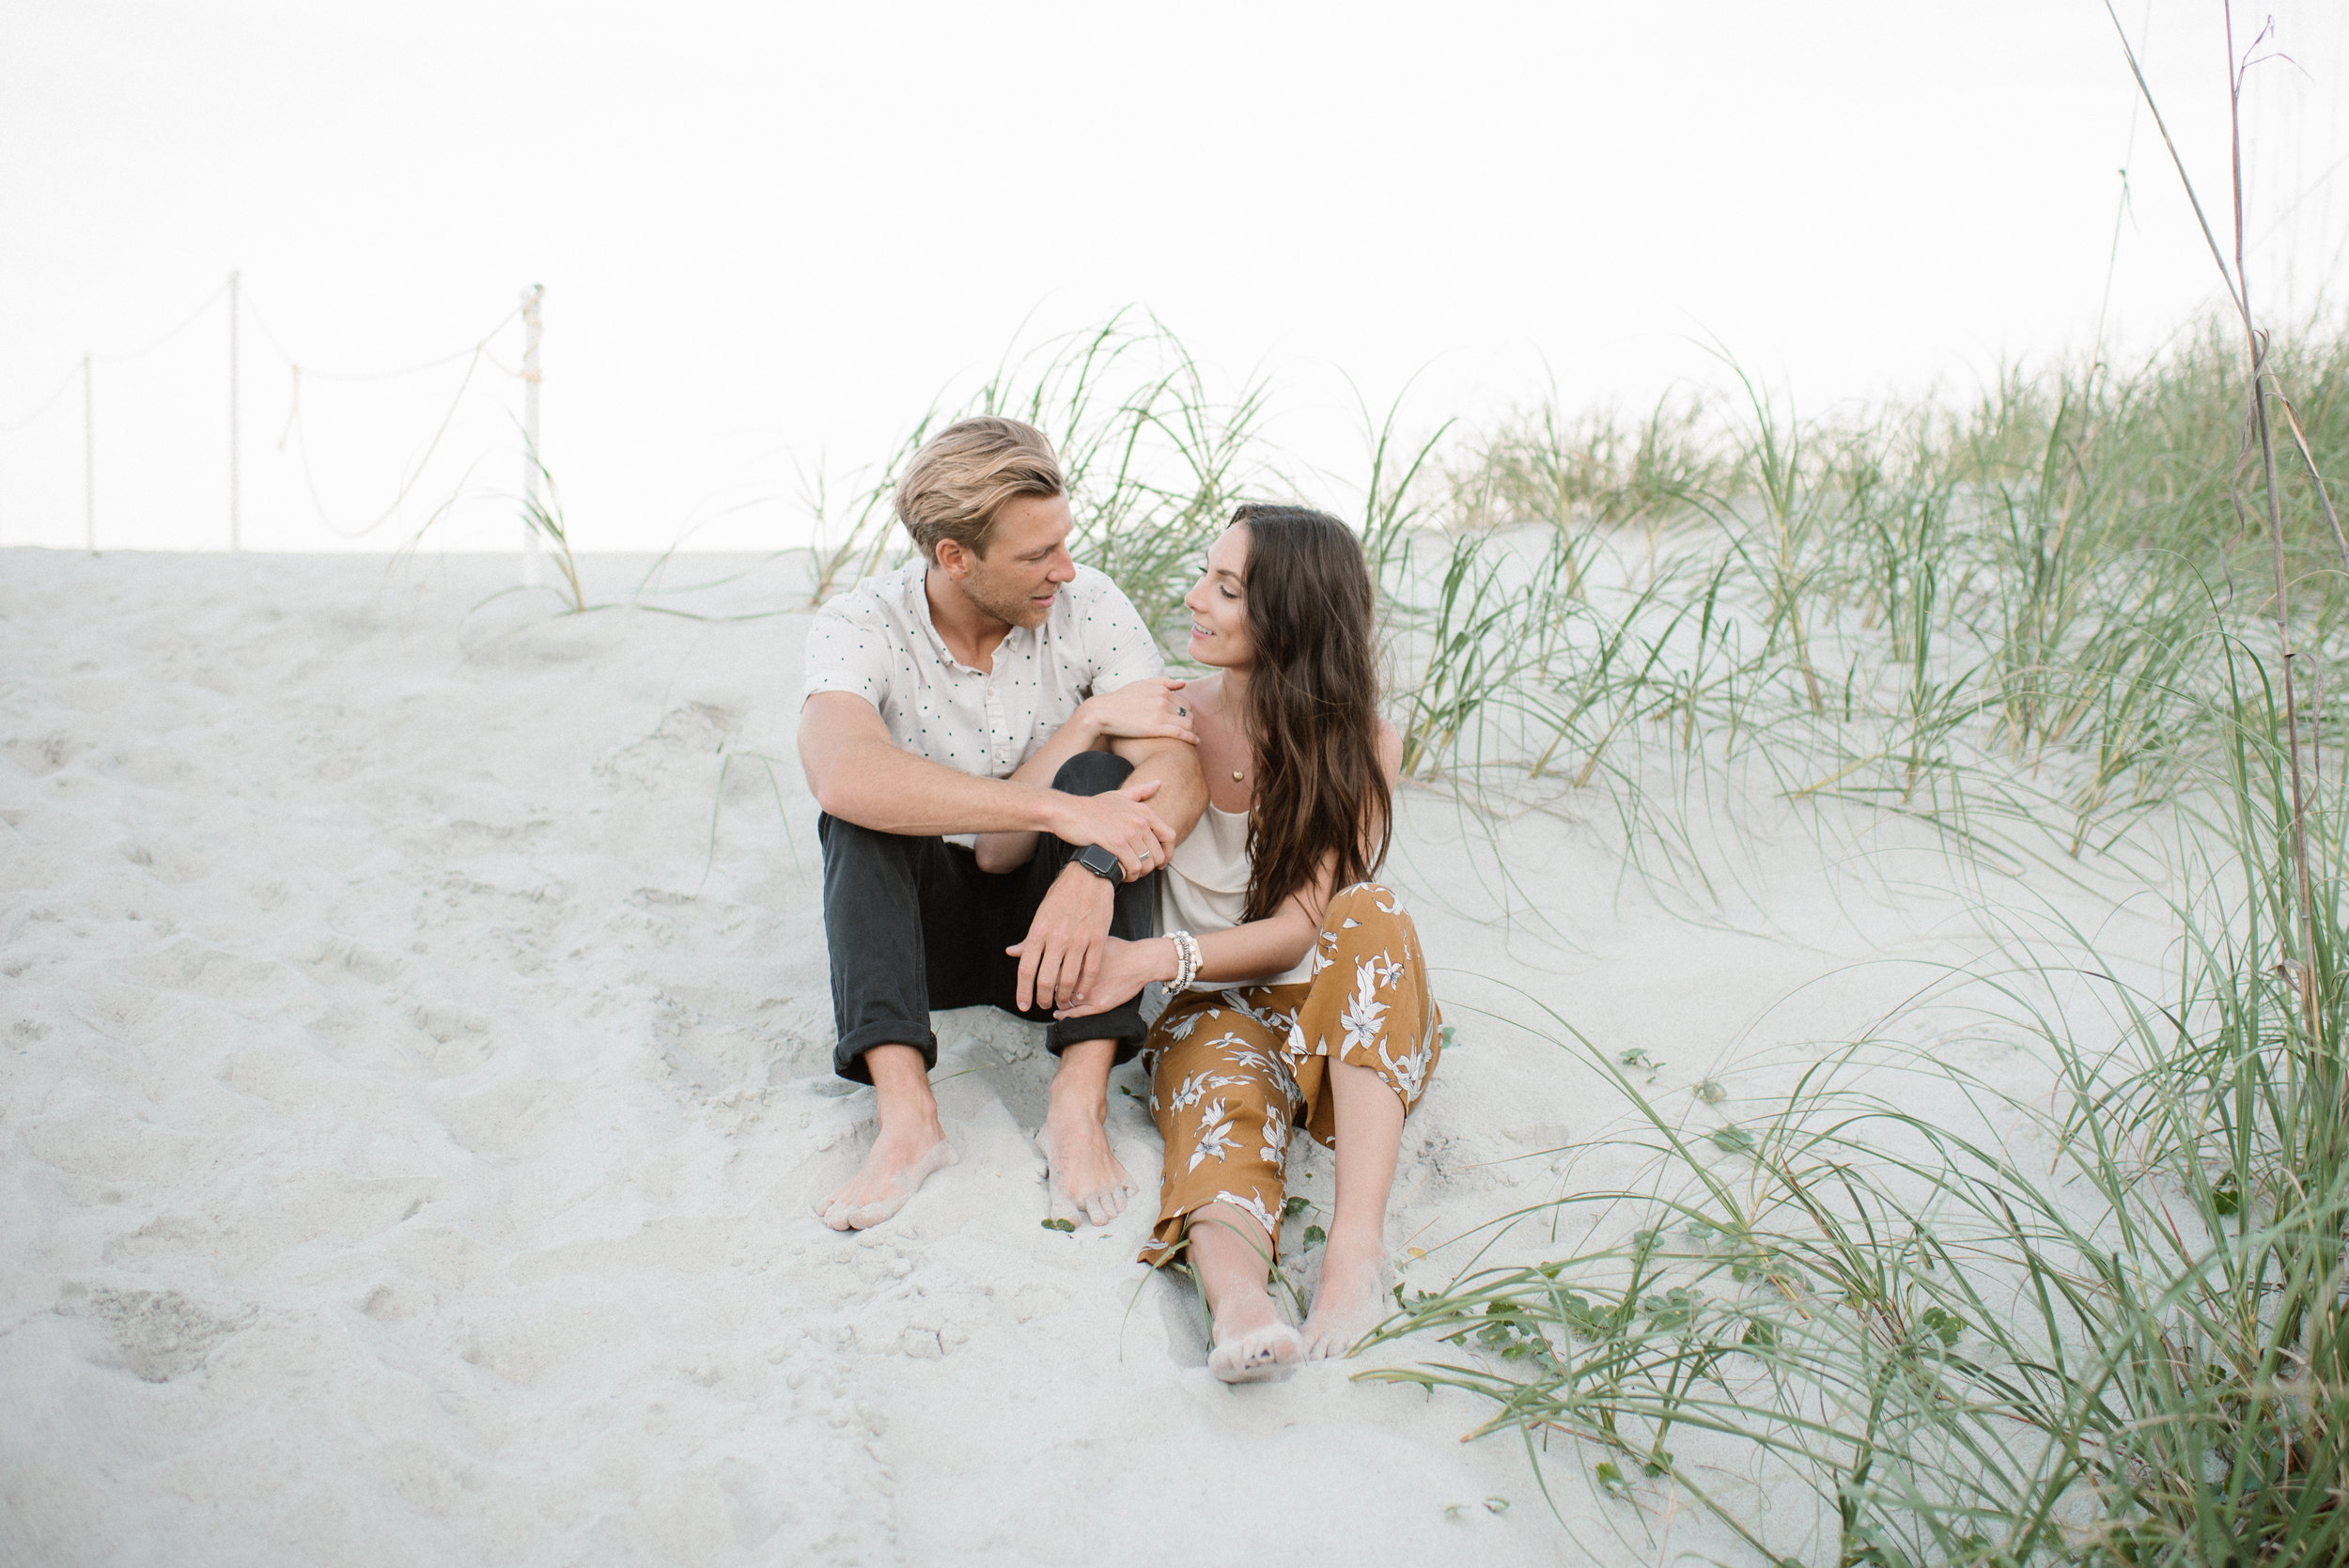 atlantic-beach-engagement-photos-heather-and-cody-67.jpg